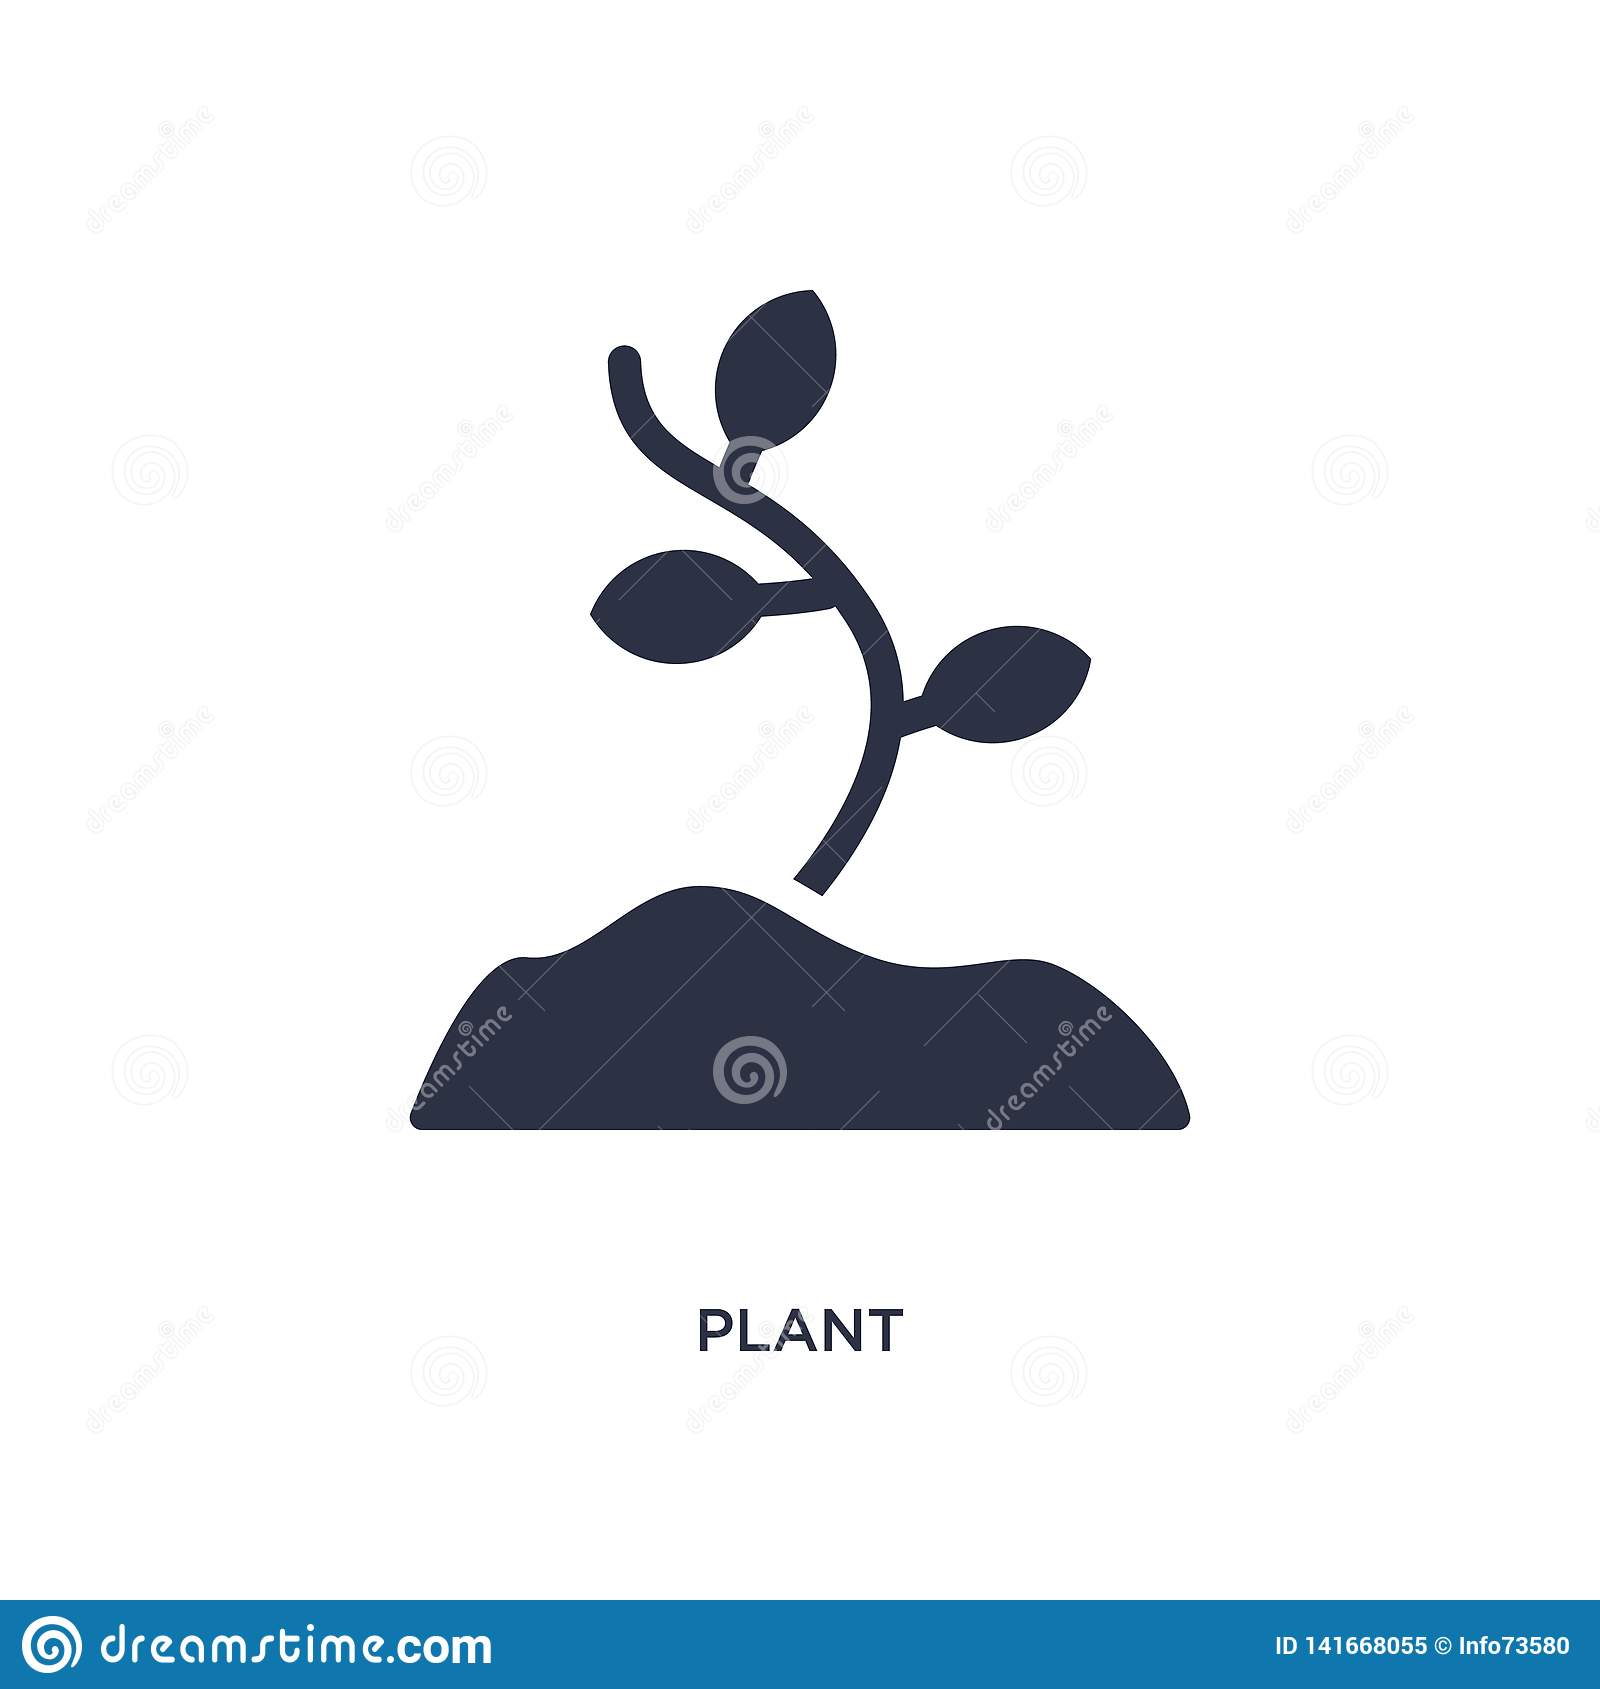 plant icon on white background. Simple element illustration from stone age concept